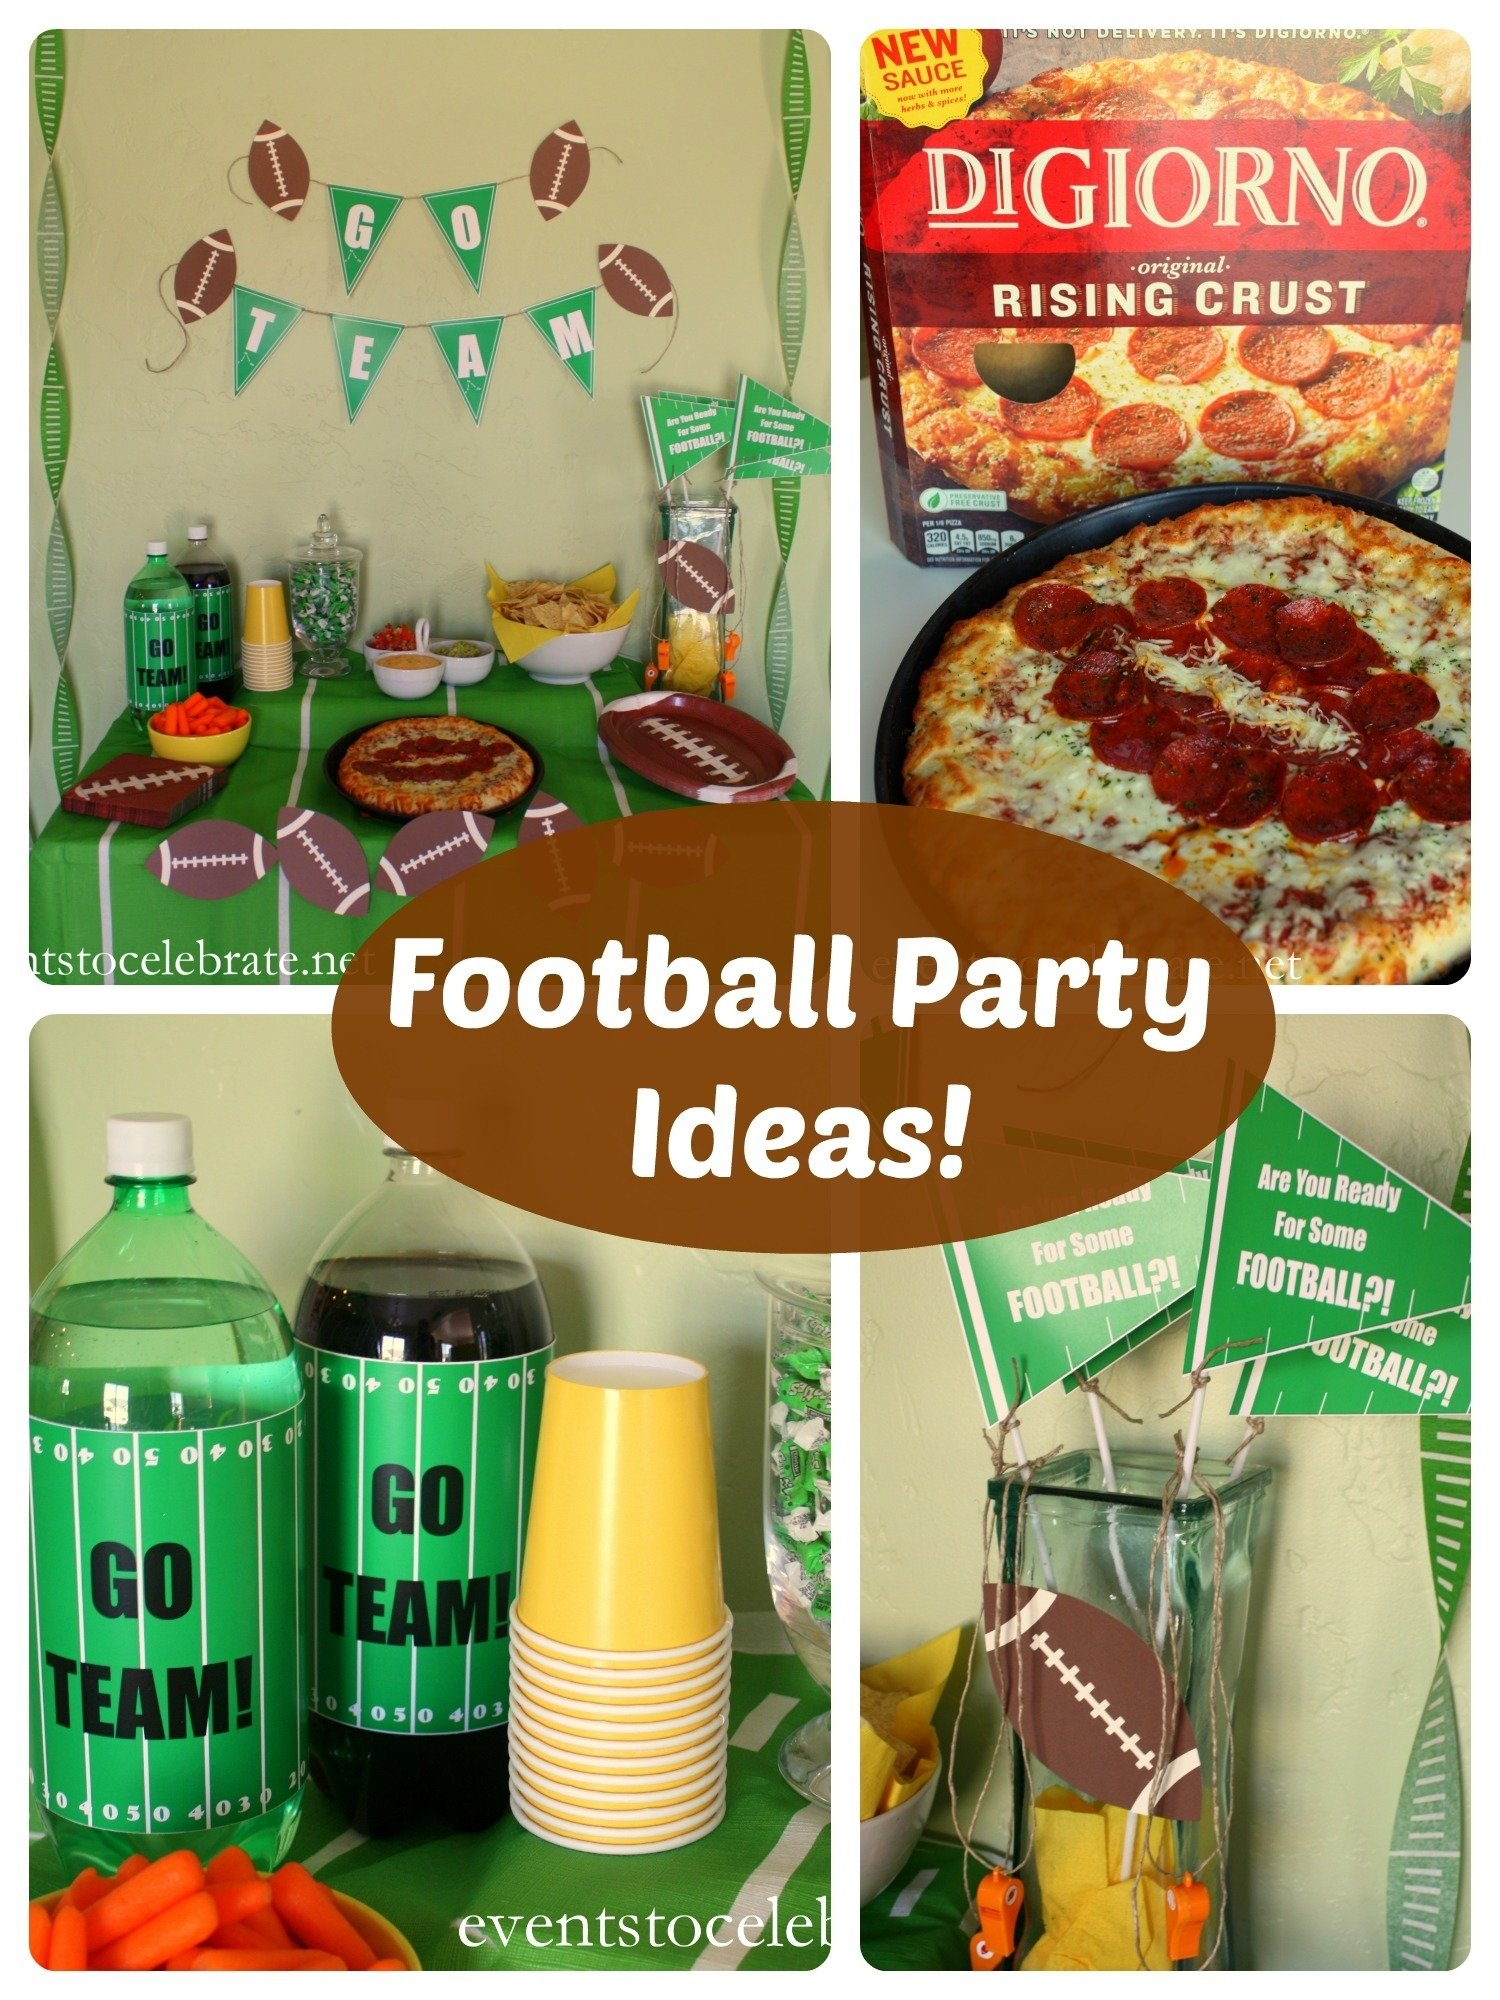 10 Stylish Football Party Ideas For Kids football party ideas events to celebrate 2 2021